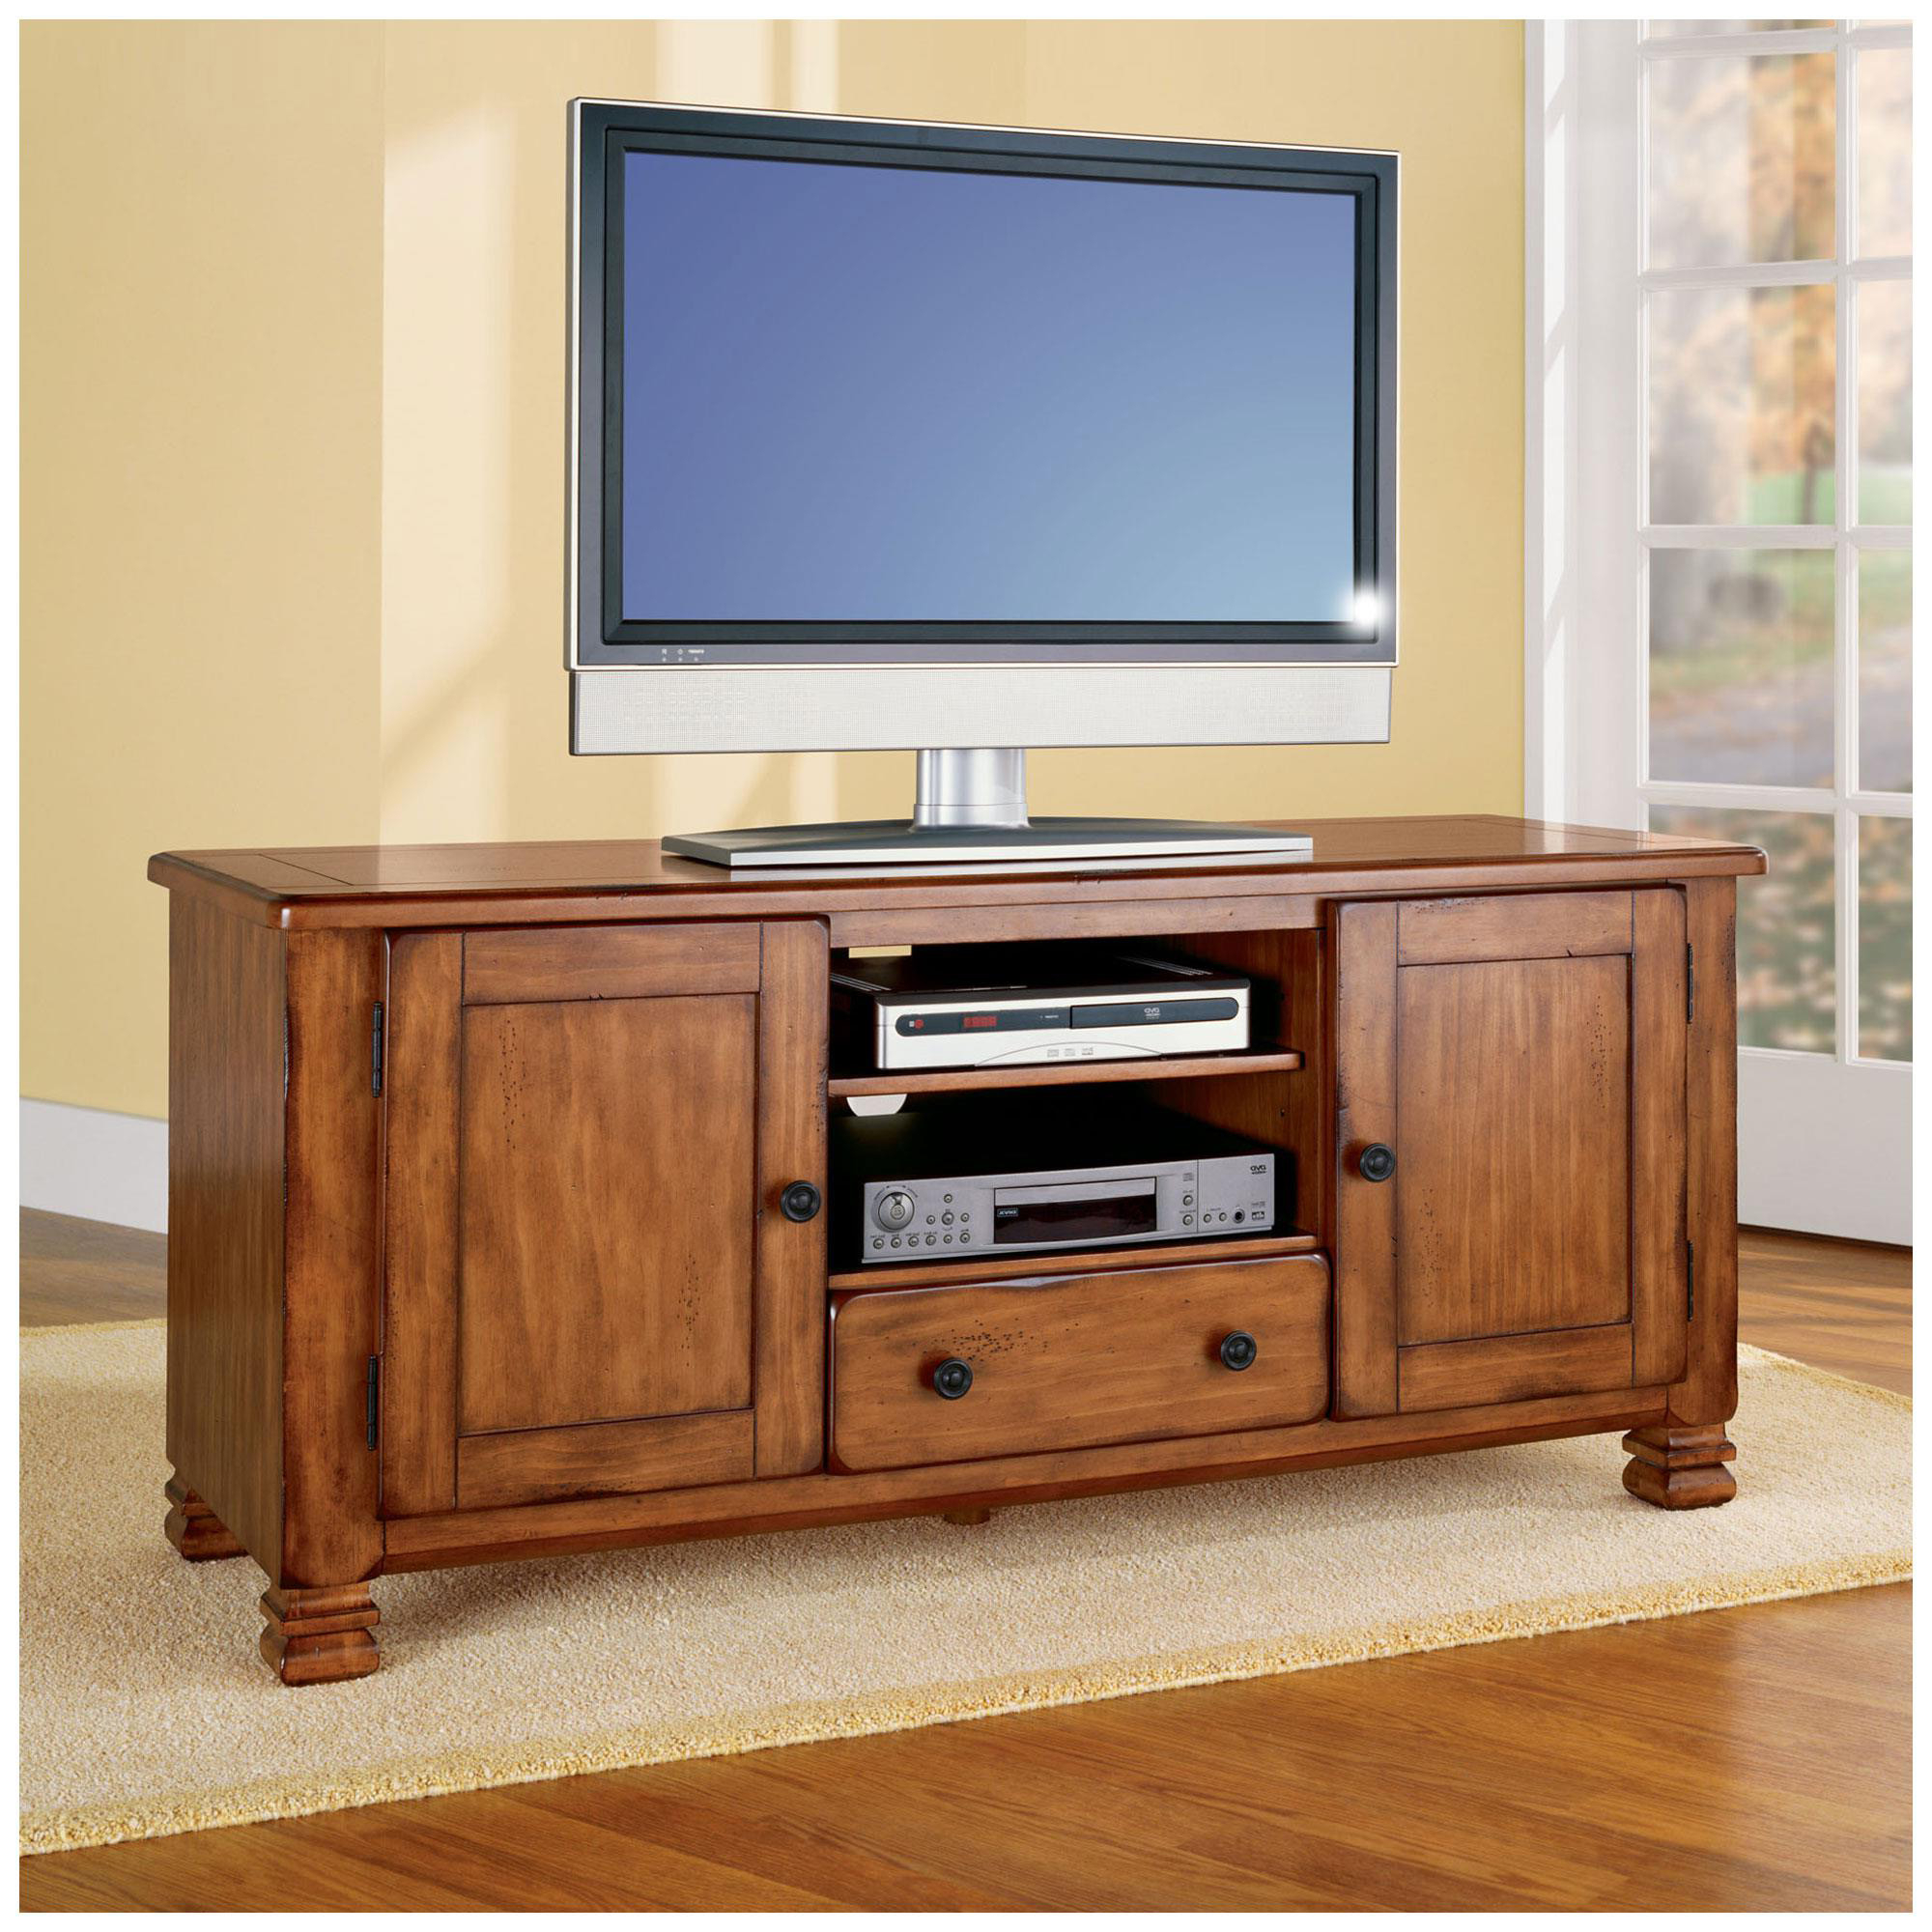 2017 Amish Corner Tv Stand Solid Wood Console Mission Style Stands For For Solid Wood Corner Tv Cabinets (View 1 of 20)